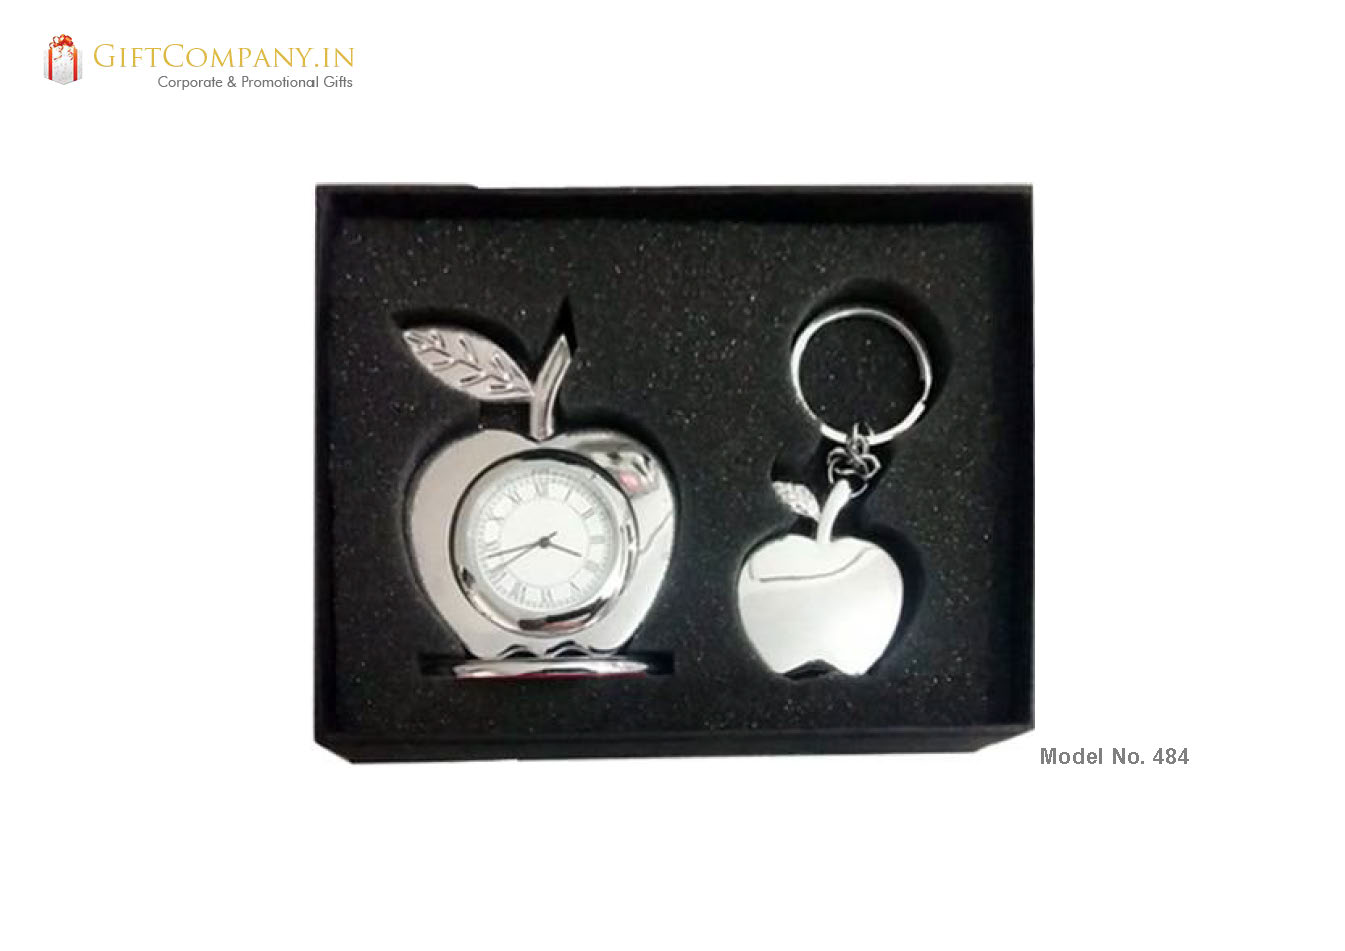 Gift Set - Apple Key Chain and Clock » Corporate Promotional Gifts